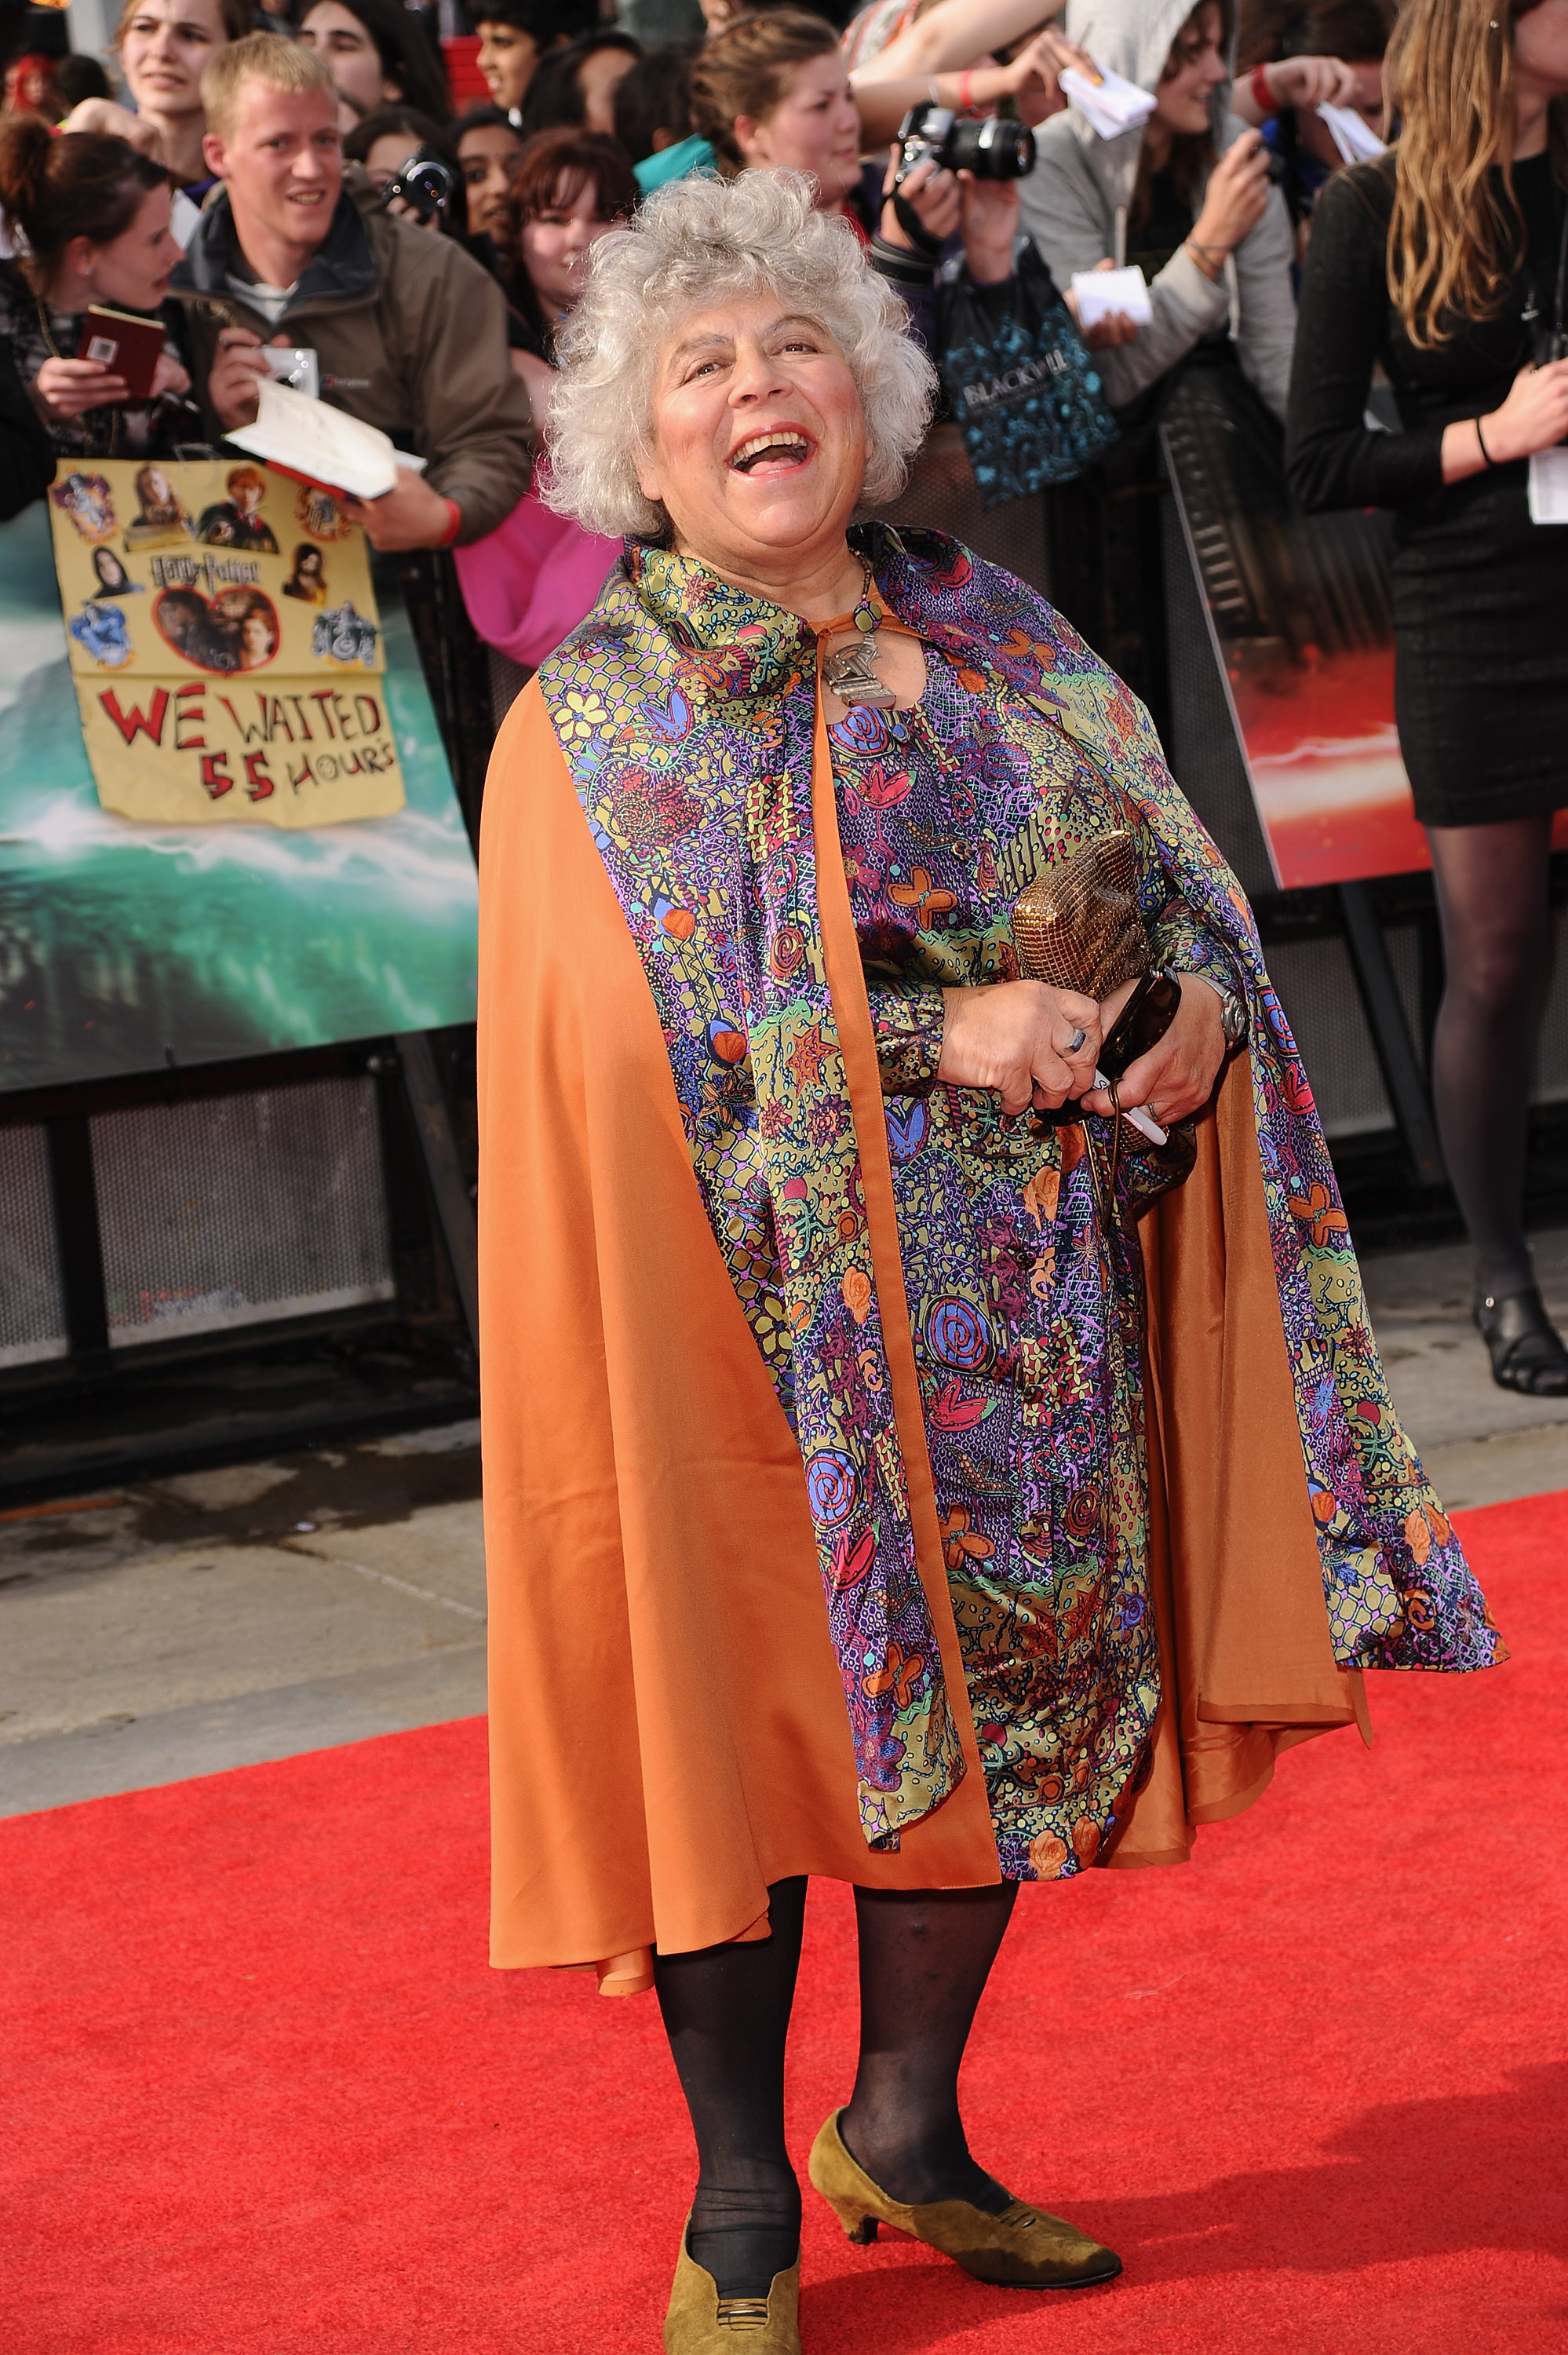 LONDON, ENGLAND - JULY 07:  Actress  Miriam Margolyes attends the World Premiere of Harry Potter and The Deathly Hallows - Part 2 at Trafalgar Square on July 7, 2011 in London, England.  (Photo by Ian Gavan/Getty Images)